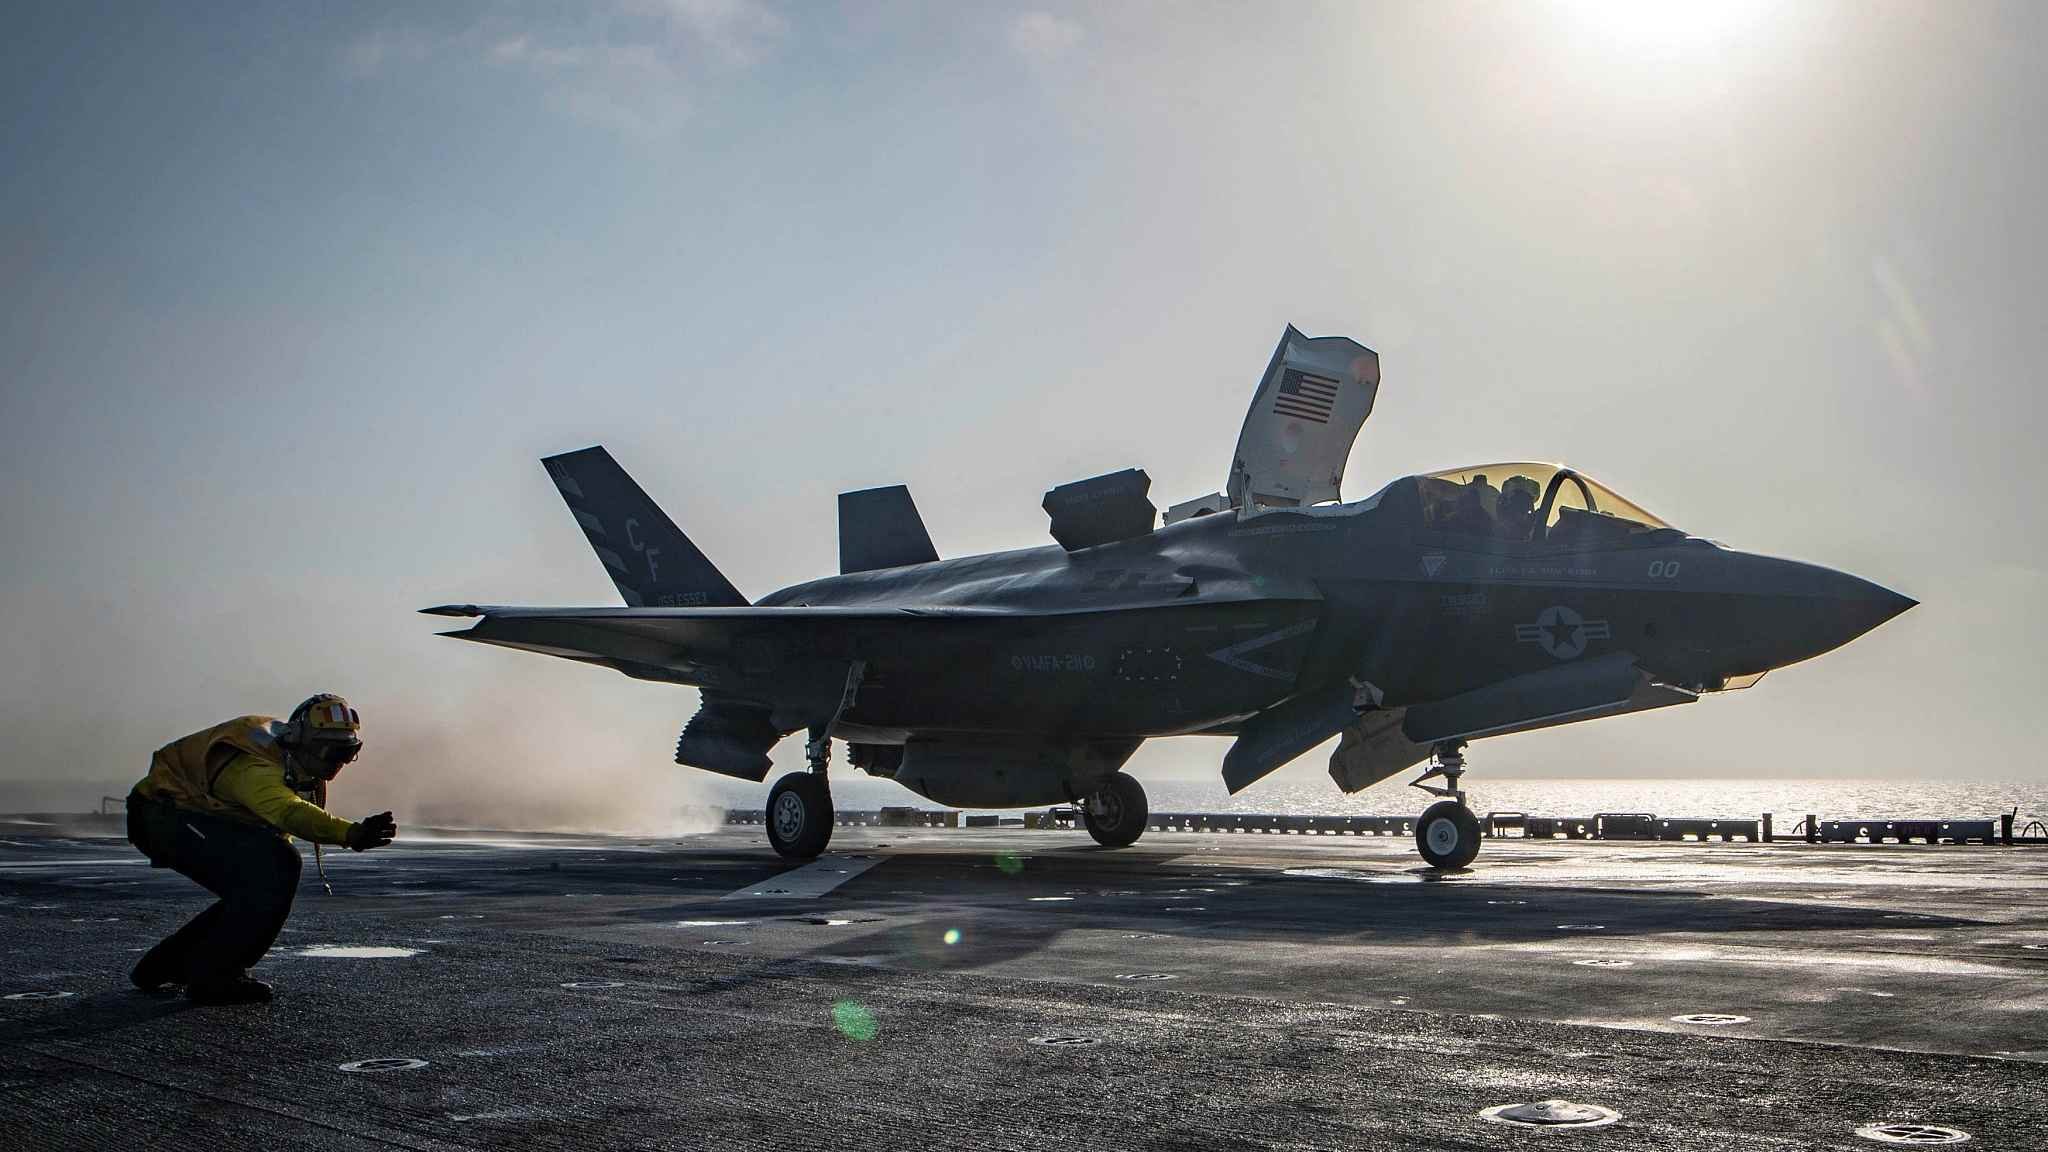 US F-35 fighter jet crashes at Florida base, pilot in stable condition